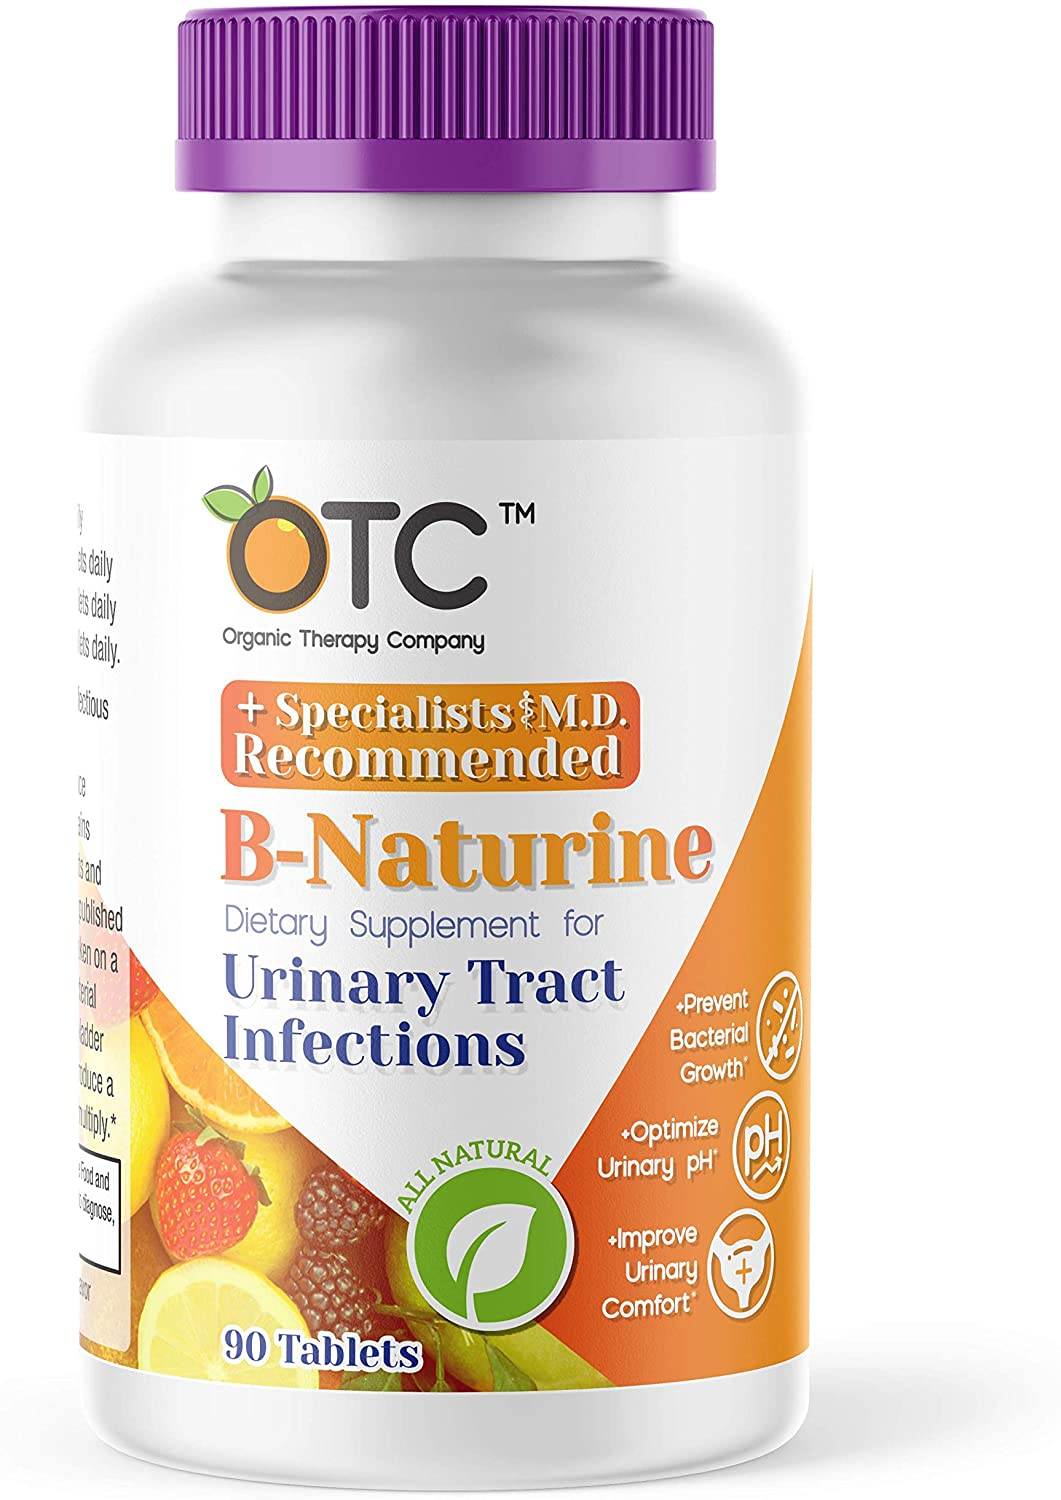 B-Naturine - All Natural Dietary Supplement for Urinary Tract Infections (UTI) Packed with Vitamin C - Developed by Board-Certified Infectious Disease Physicians of The Organic Therapy Company (OTC)